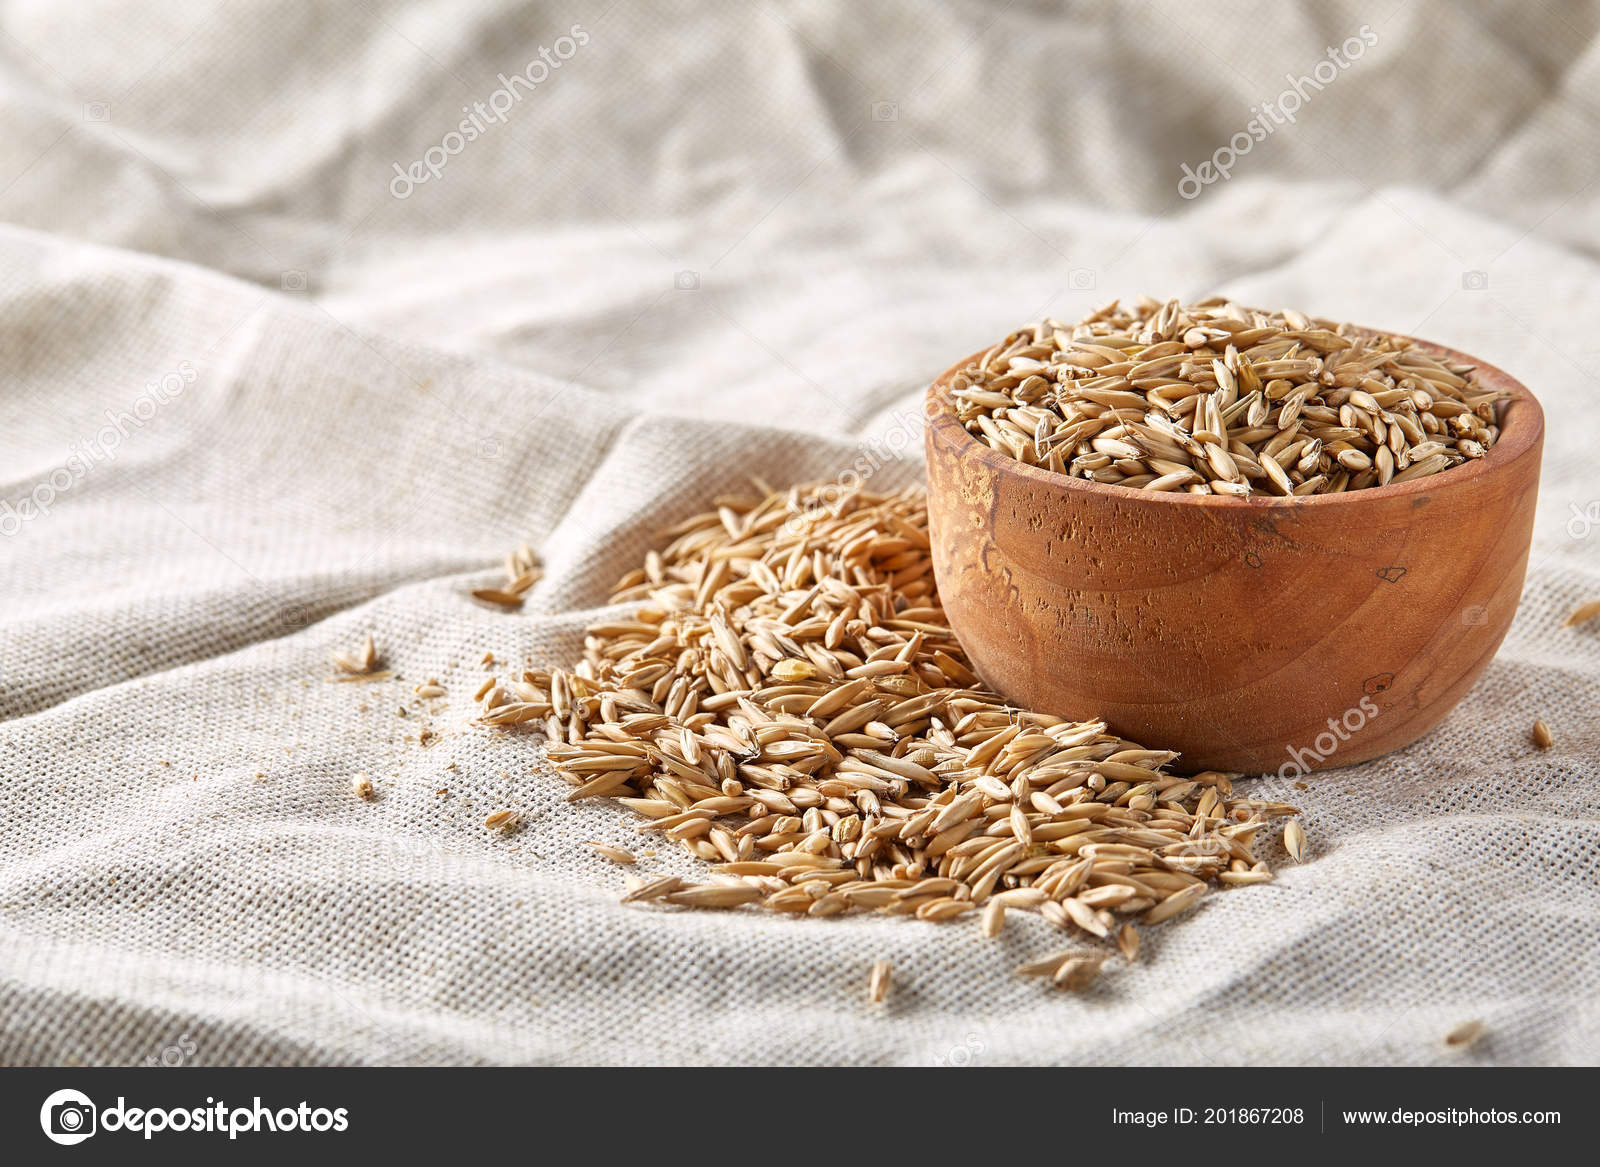 Oat groats or oat spike in wooden plate on homespun tablecloth